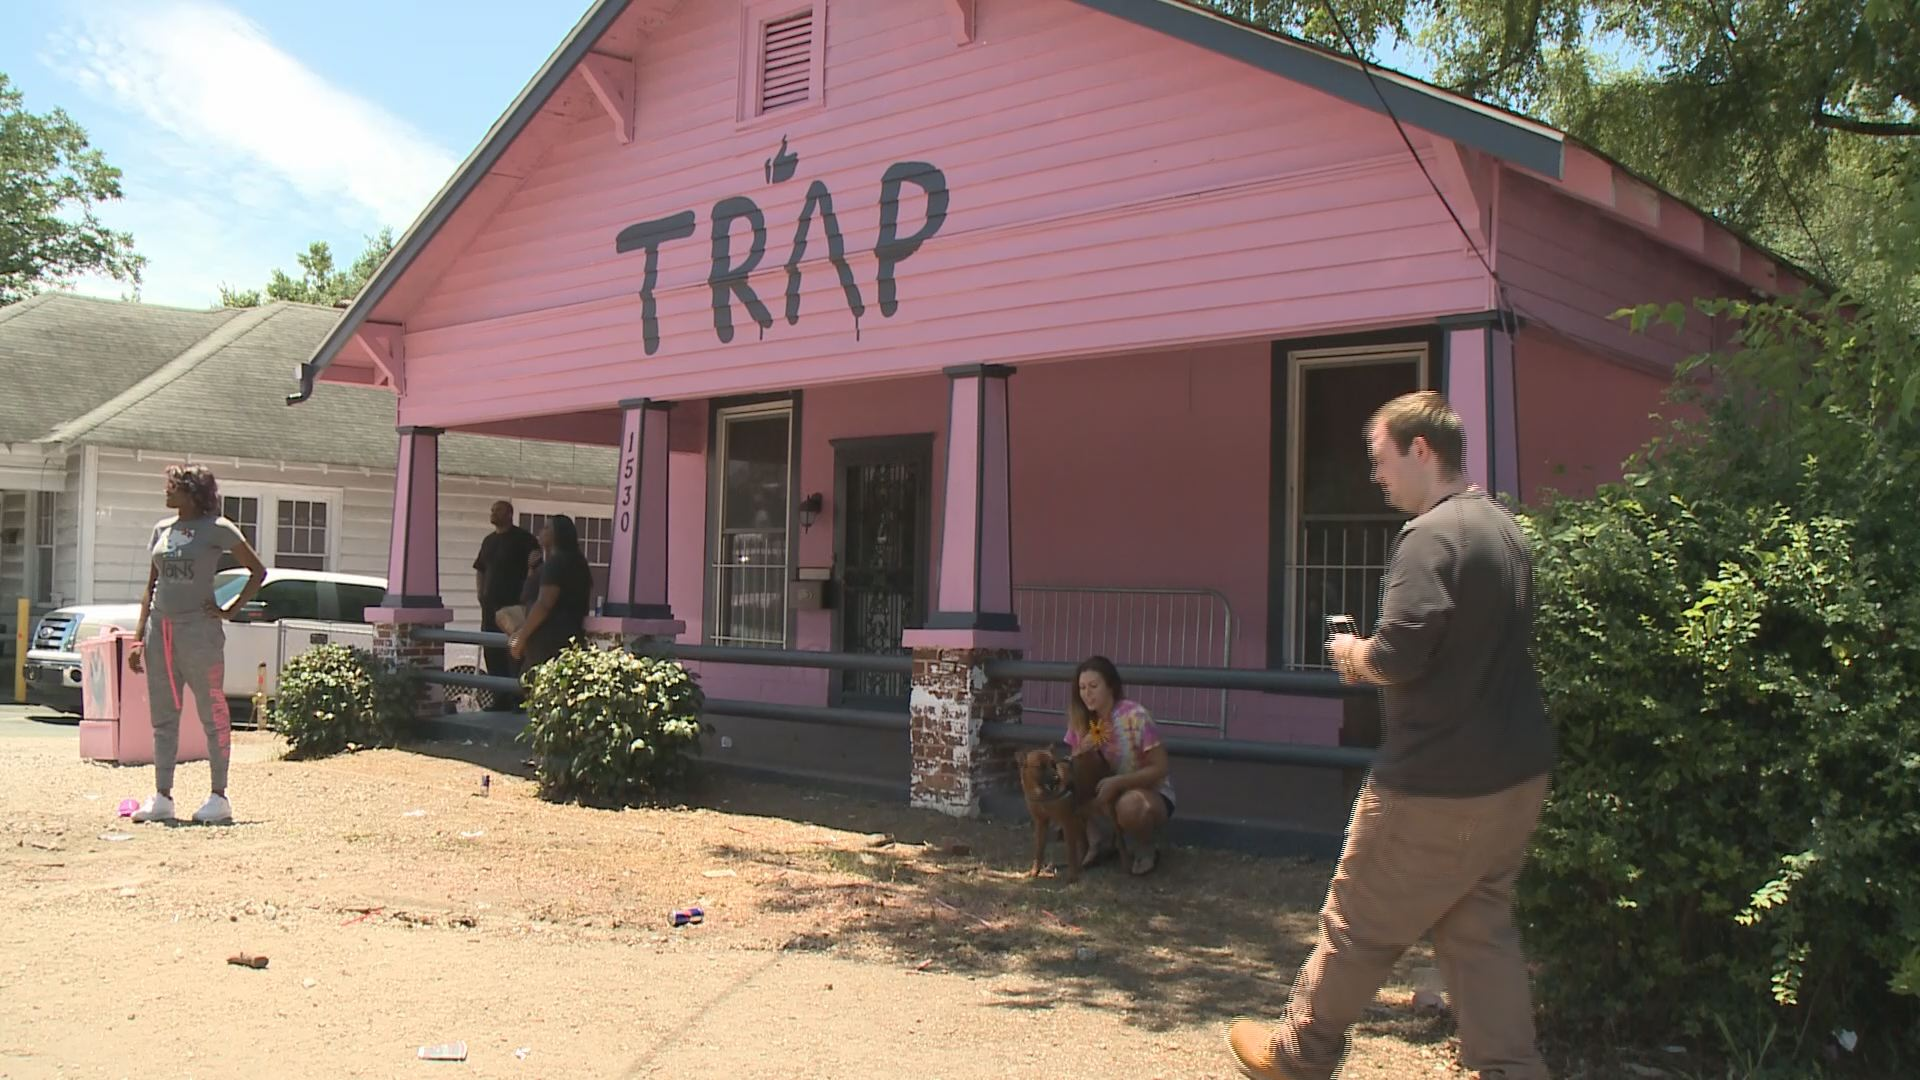 Fullsize Of 2 Chainz Trap House